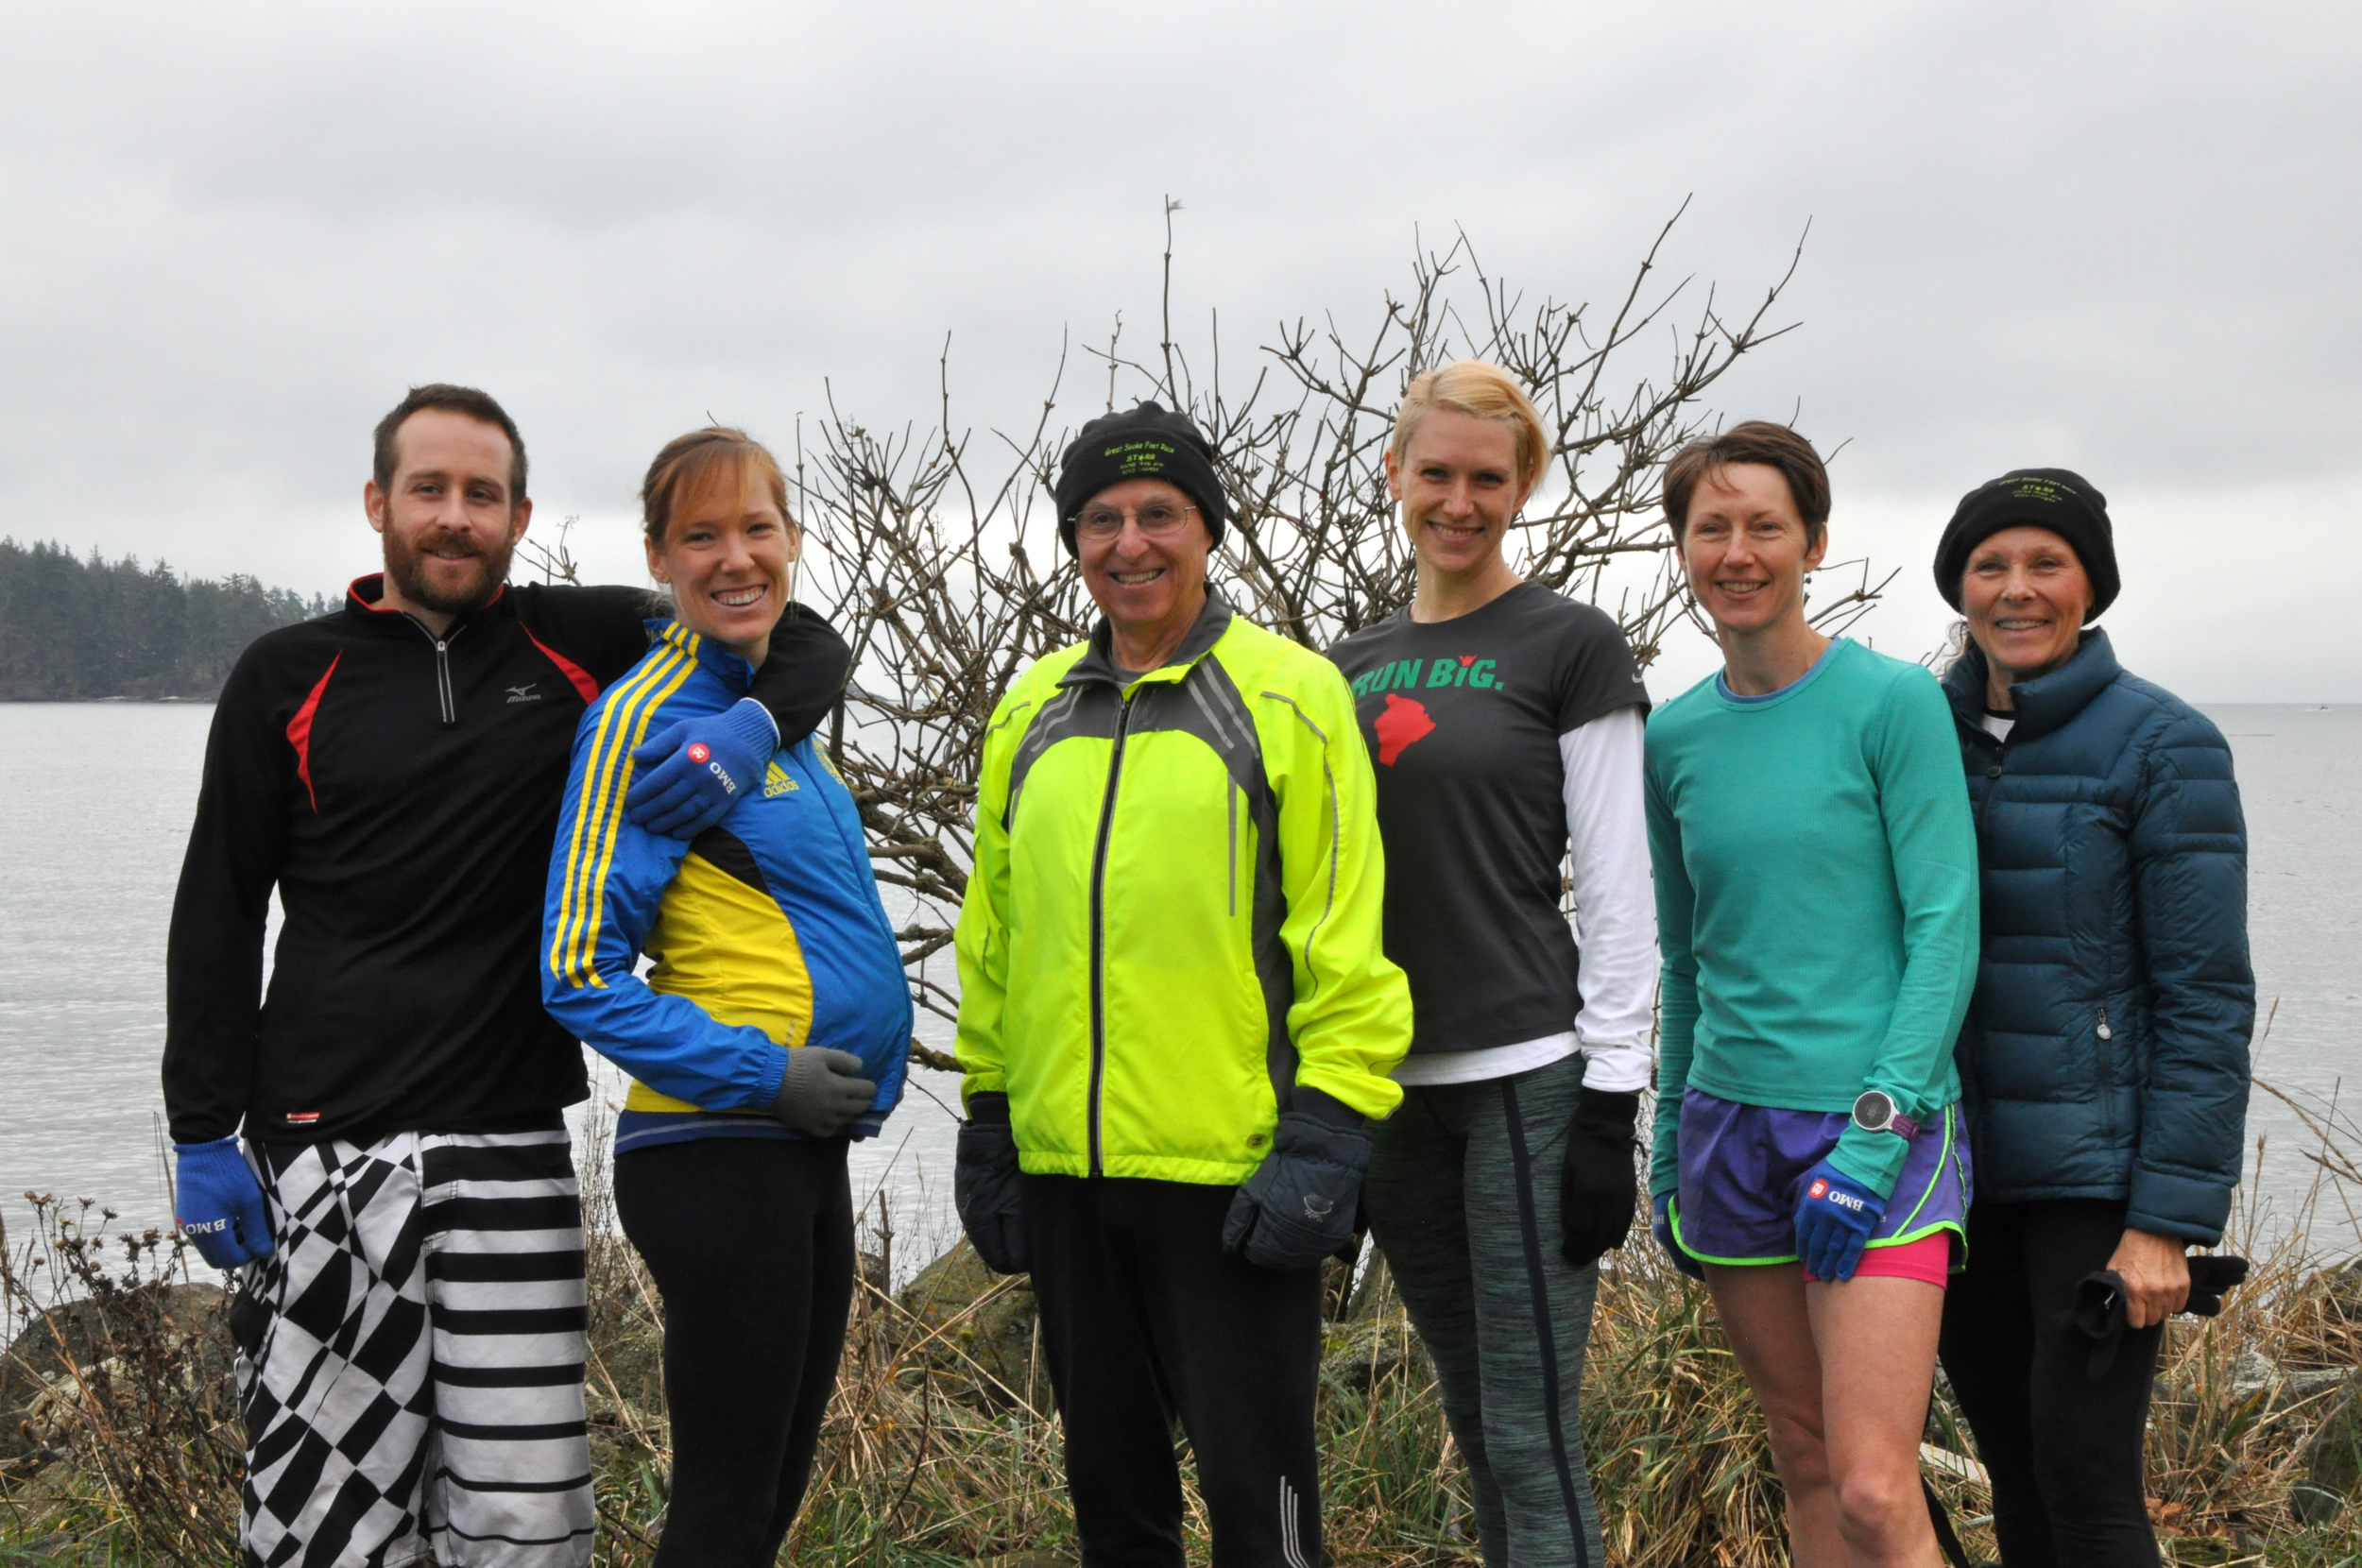 New Year's Day  2014 fun run: Ryan, Sara-Mae, Tom, Amanda, Tory and Jackie